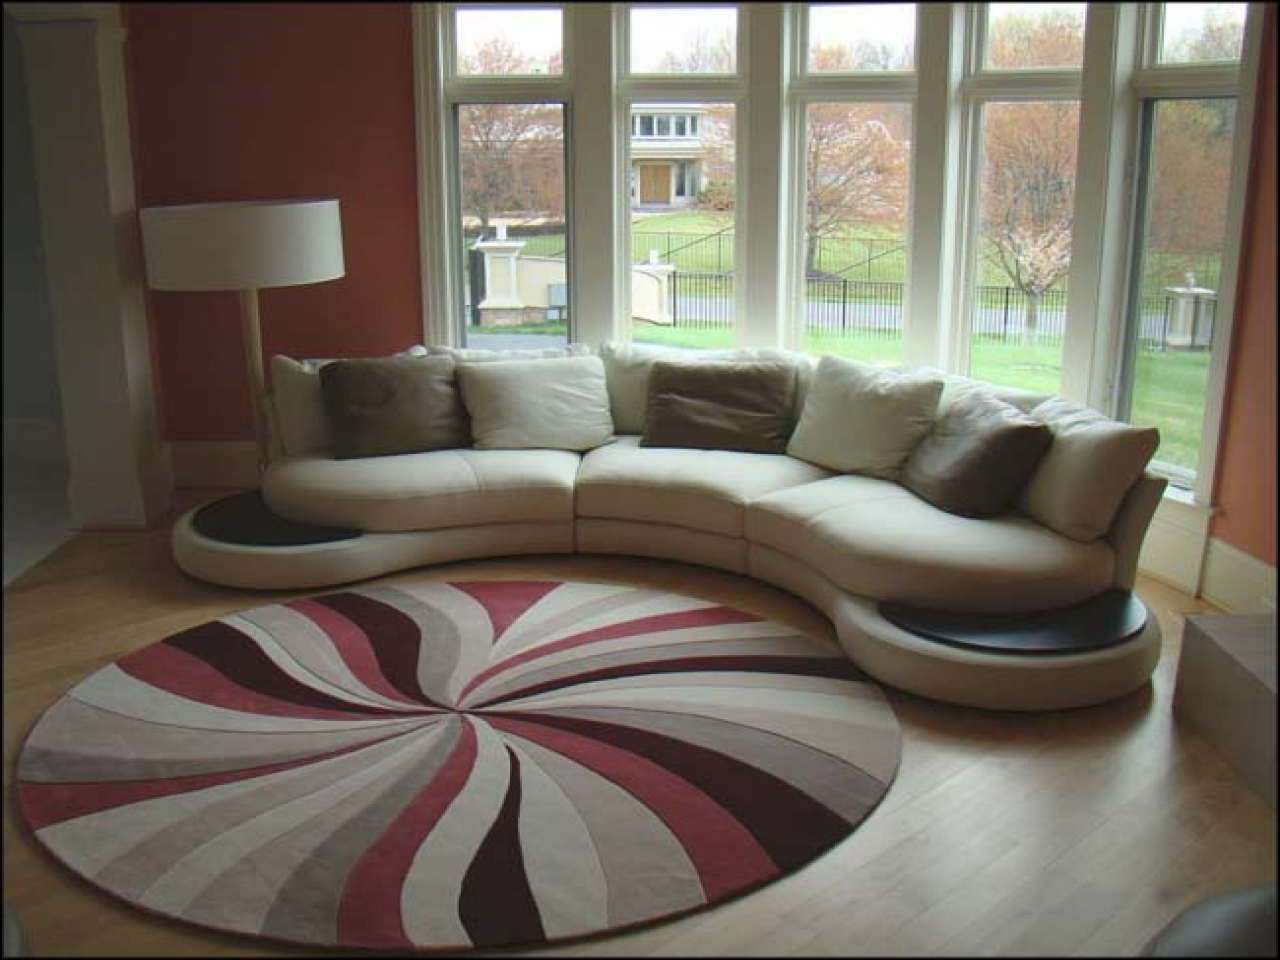 Area Rugs For Family Room Decorating Cents New Family